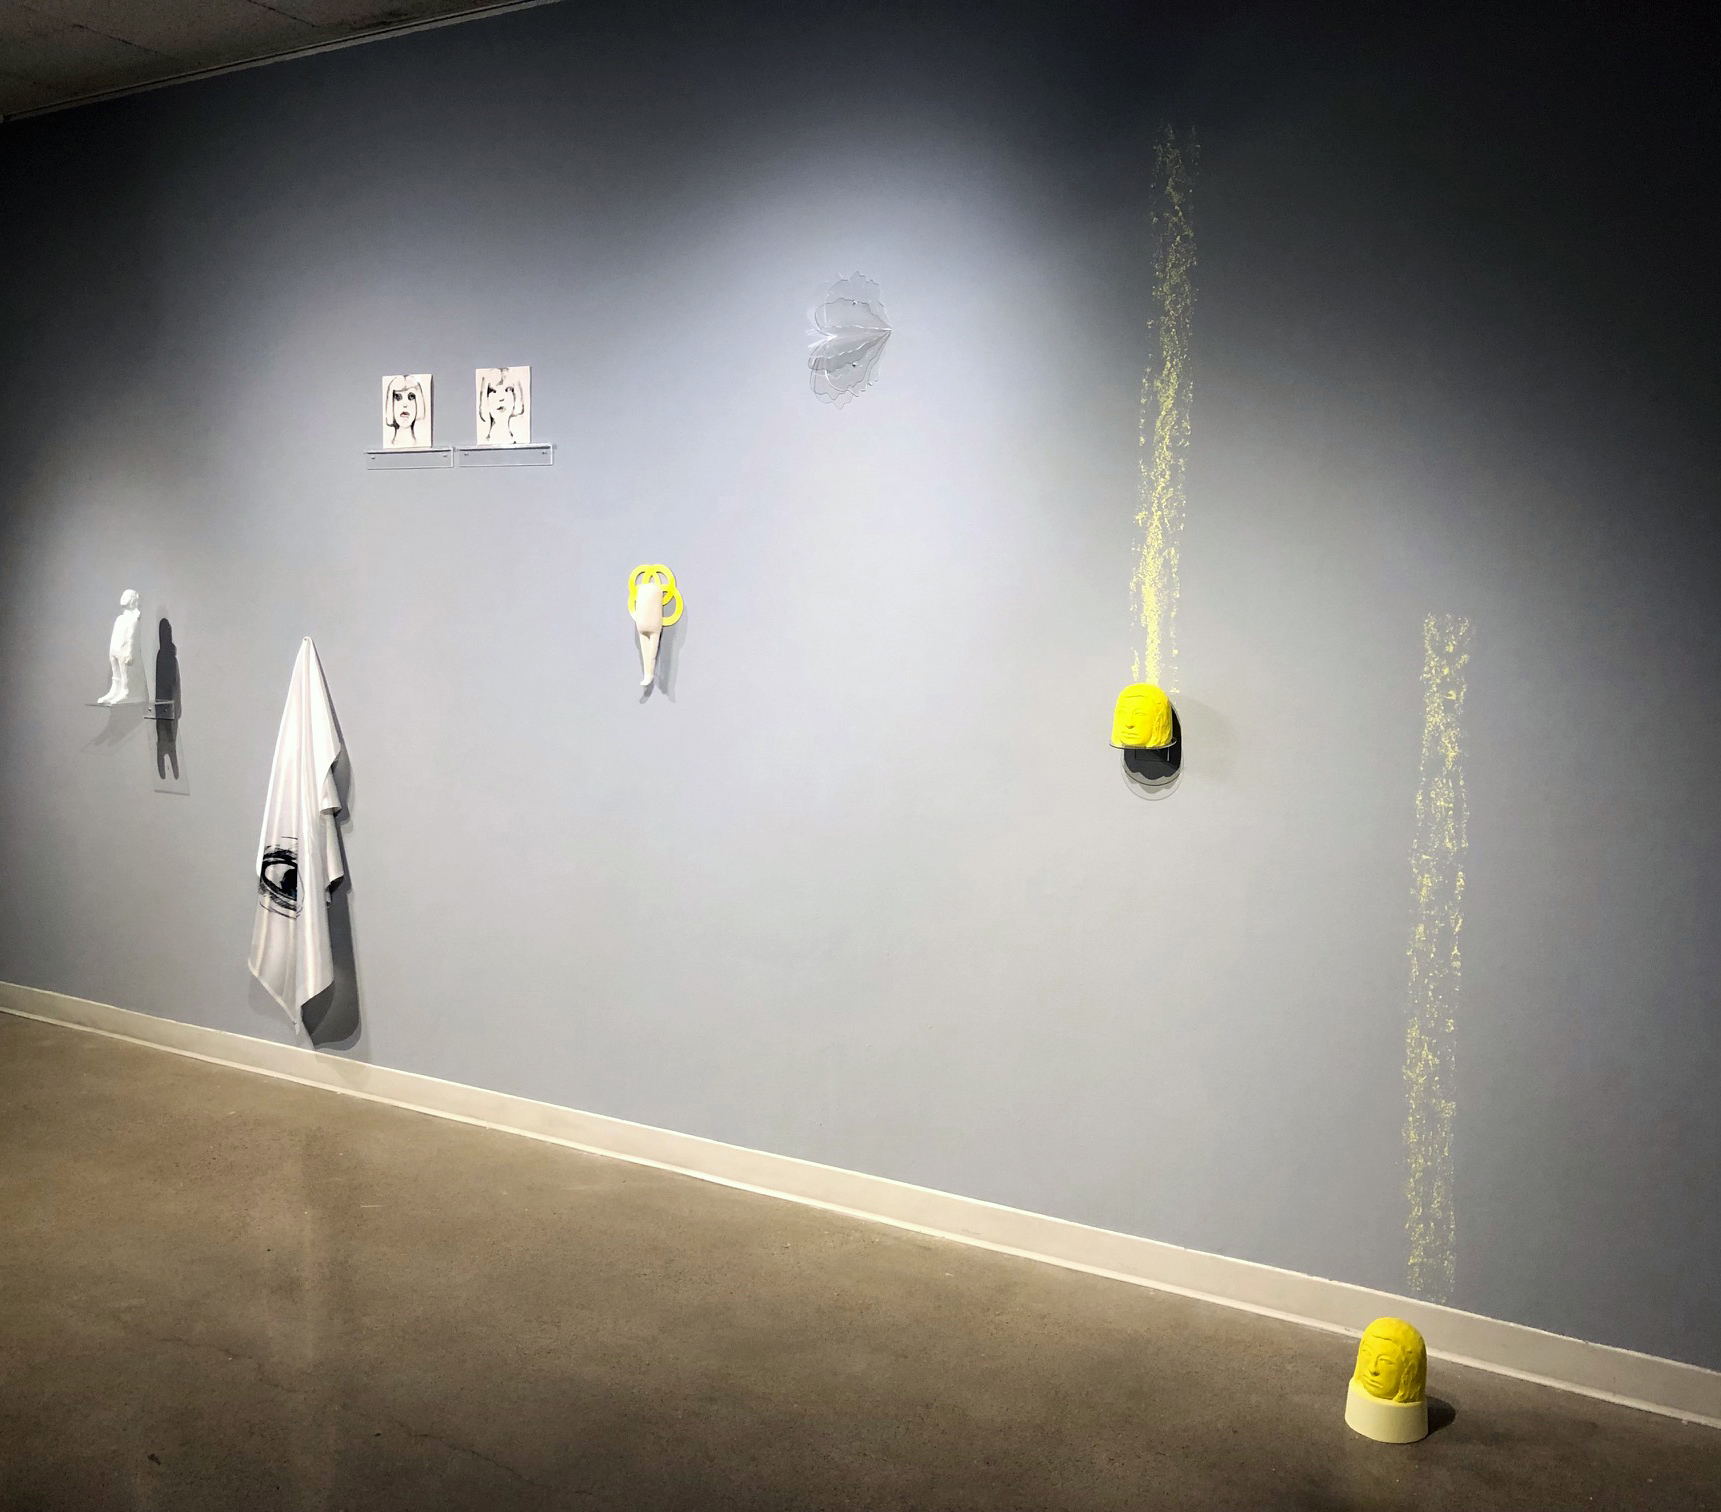 Fabricating the Real, 2019, Installation View Medium: sculptural ice, porcelain, wall drawings on satin, chiffon and laser cut acrylic figurative pieces